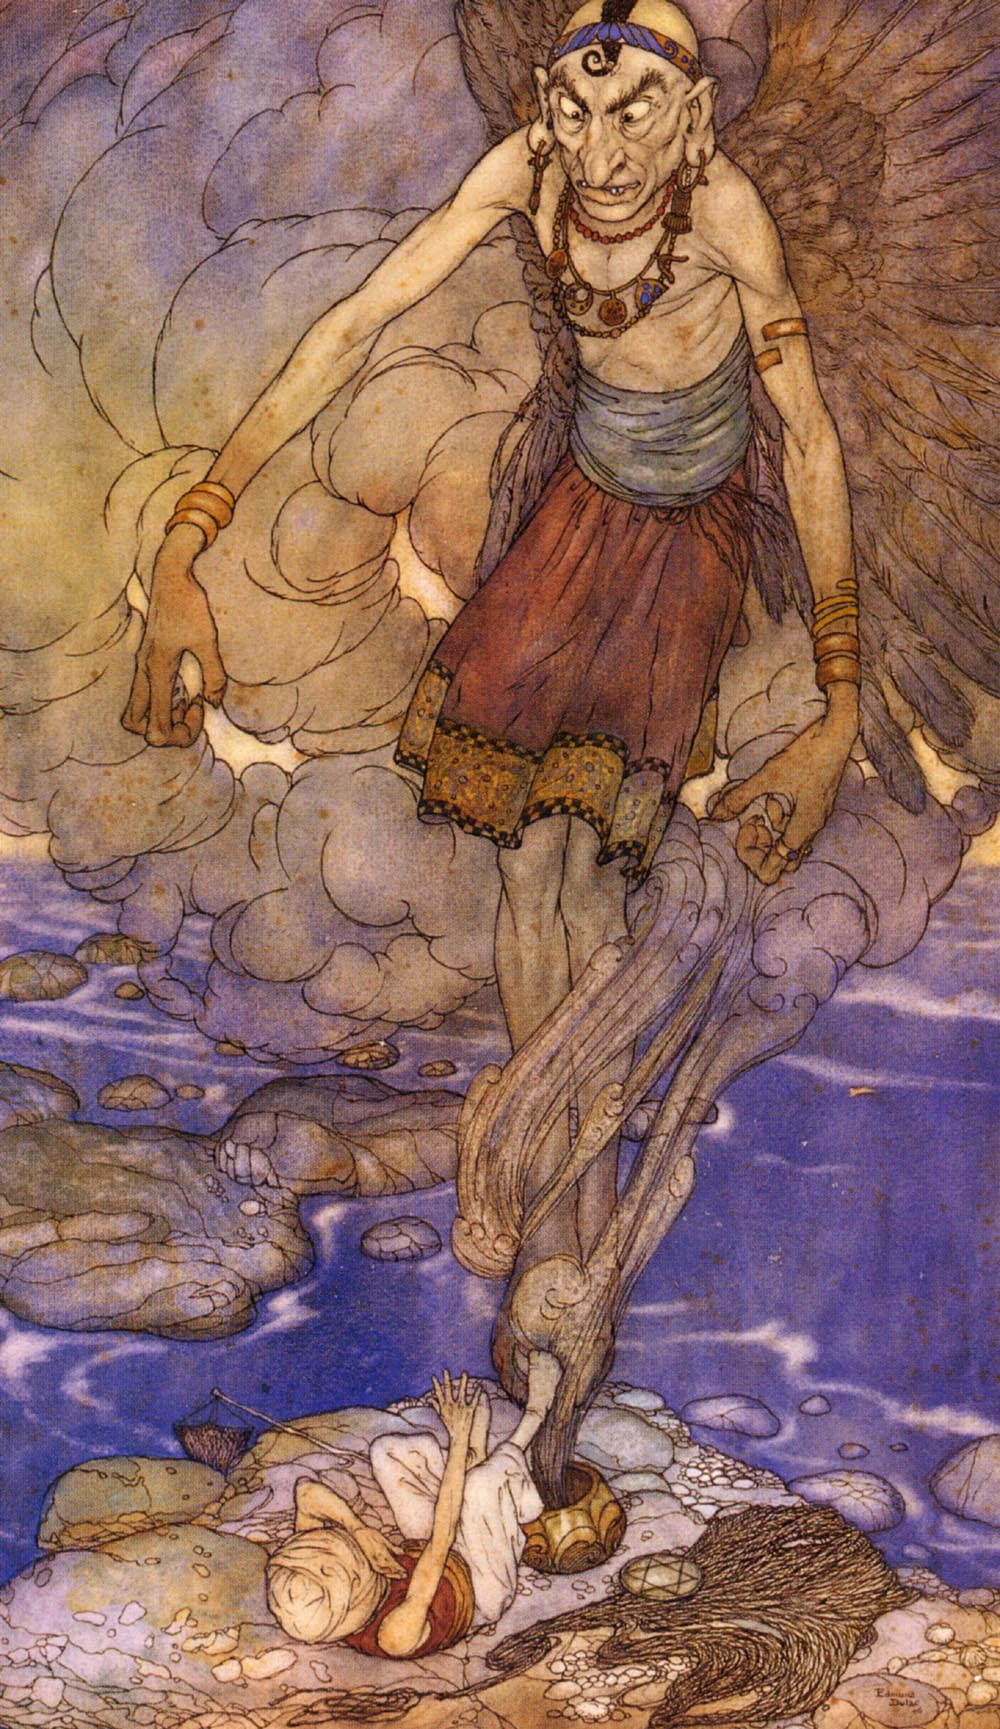 Edmund Dulac. The tale of the fisherman and the story of the king of the Black Islands